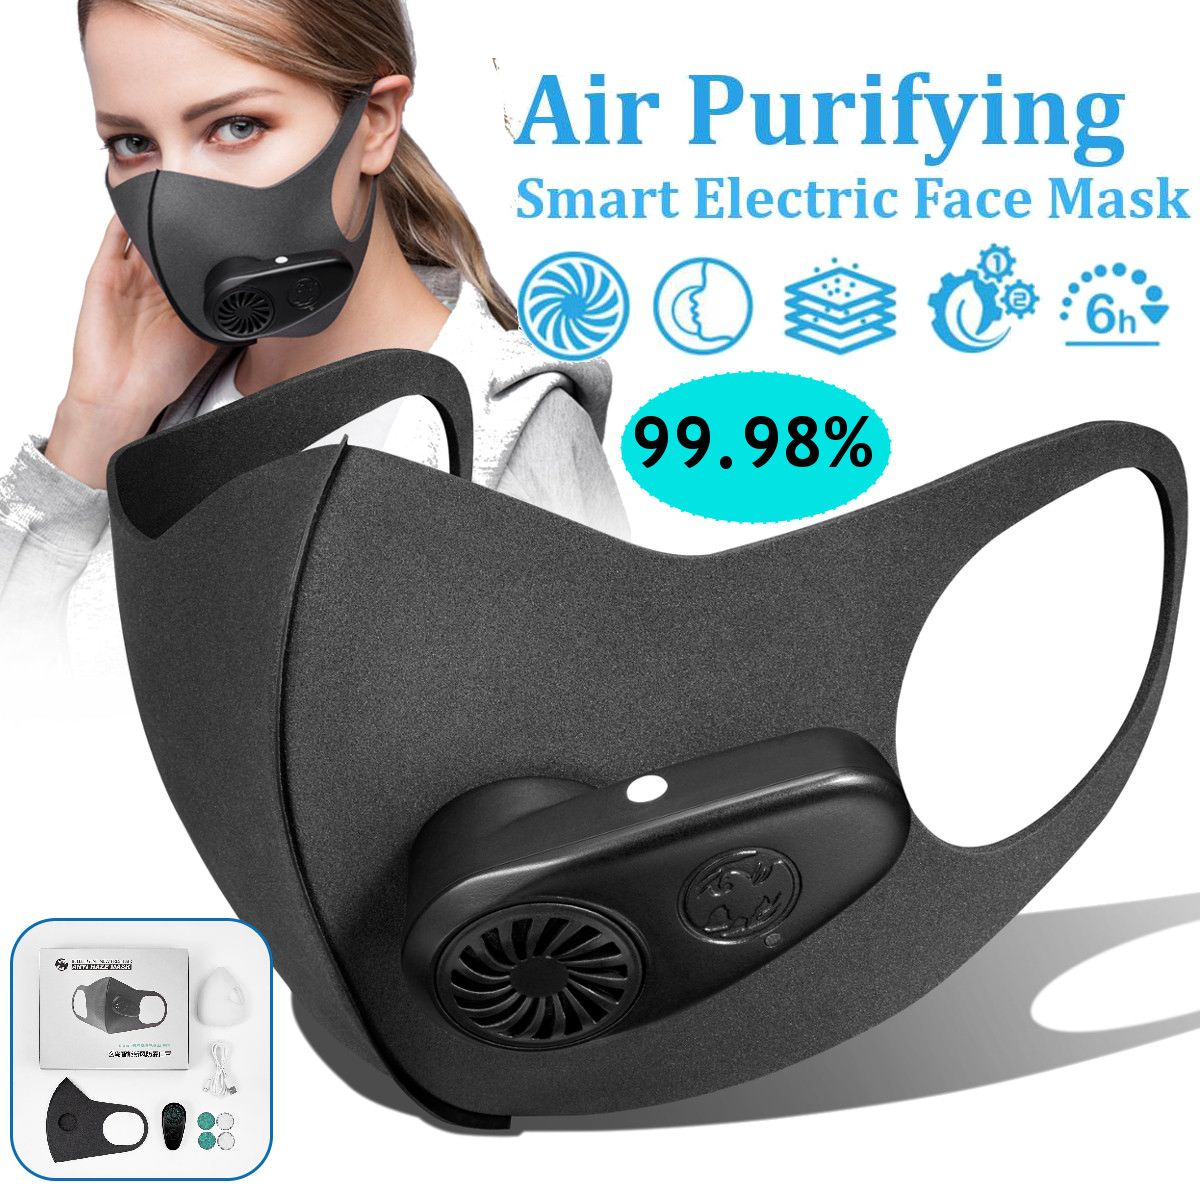 Smart Electric Face Mask Air Purifying Anti Dust Pollution Fresh Air Supply Pm2.5 With Breathing Valve Personal Health